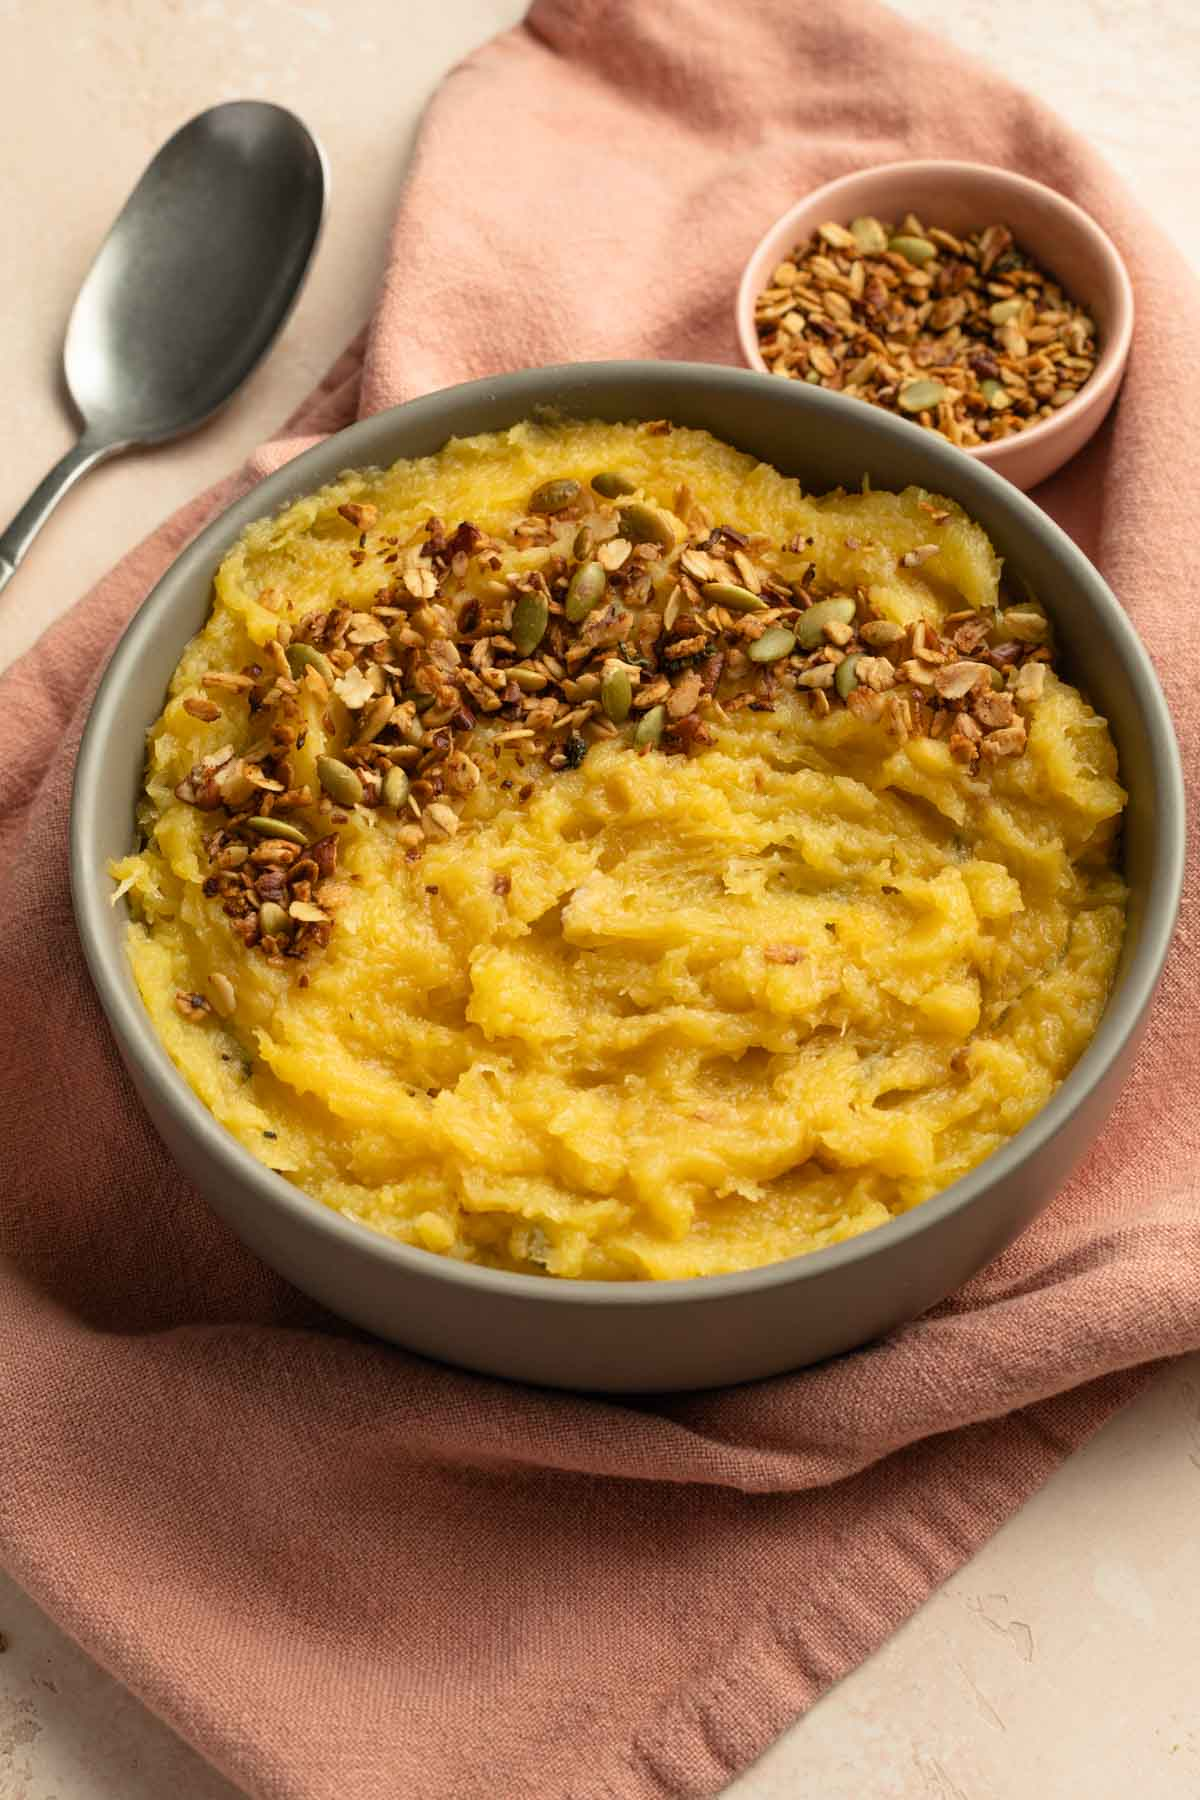 Side view of mashed squash topped with granola in a bowl.